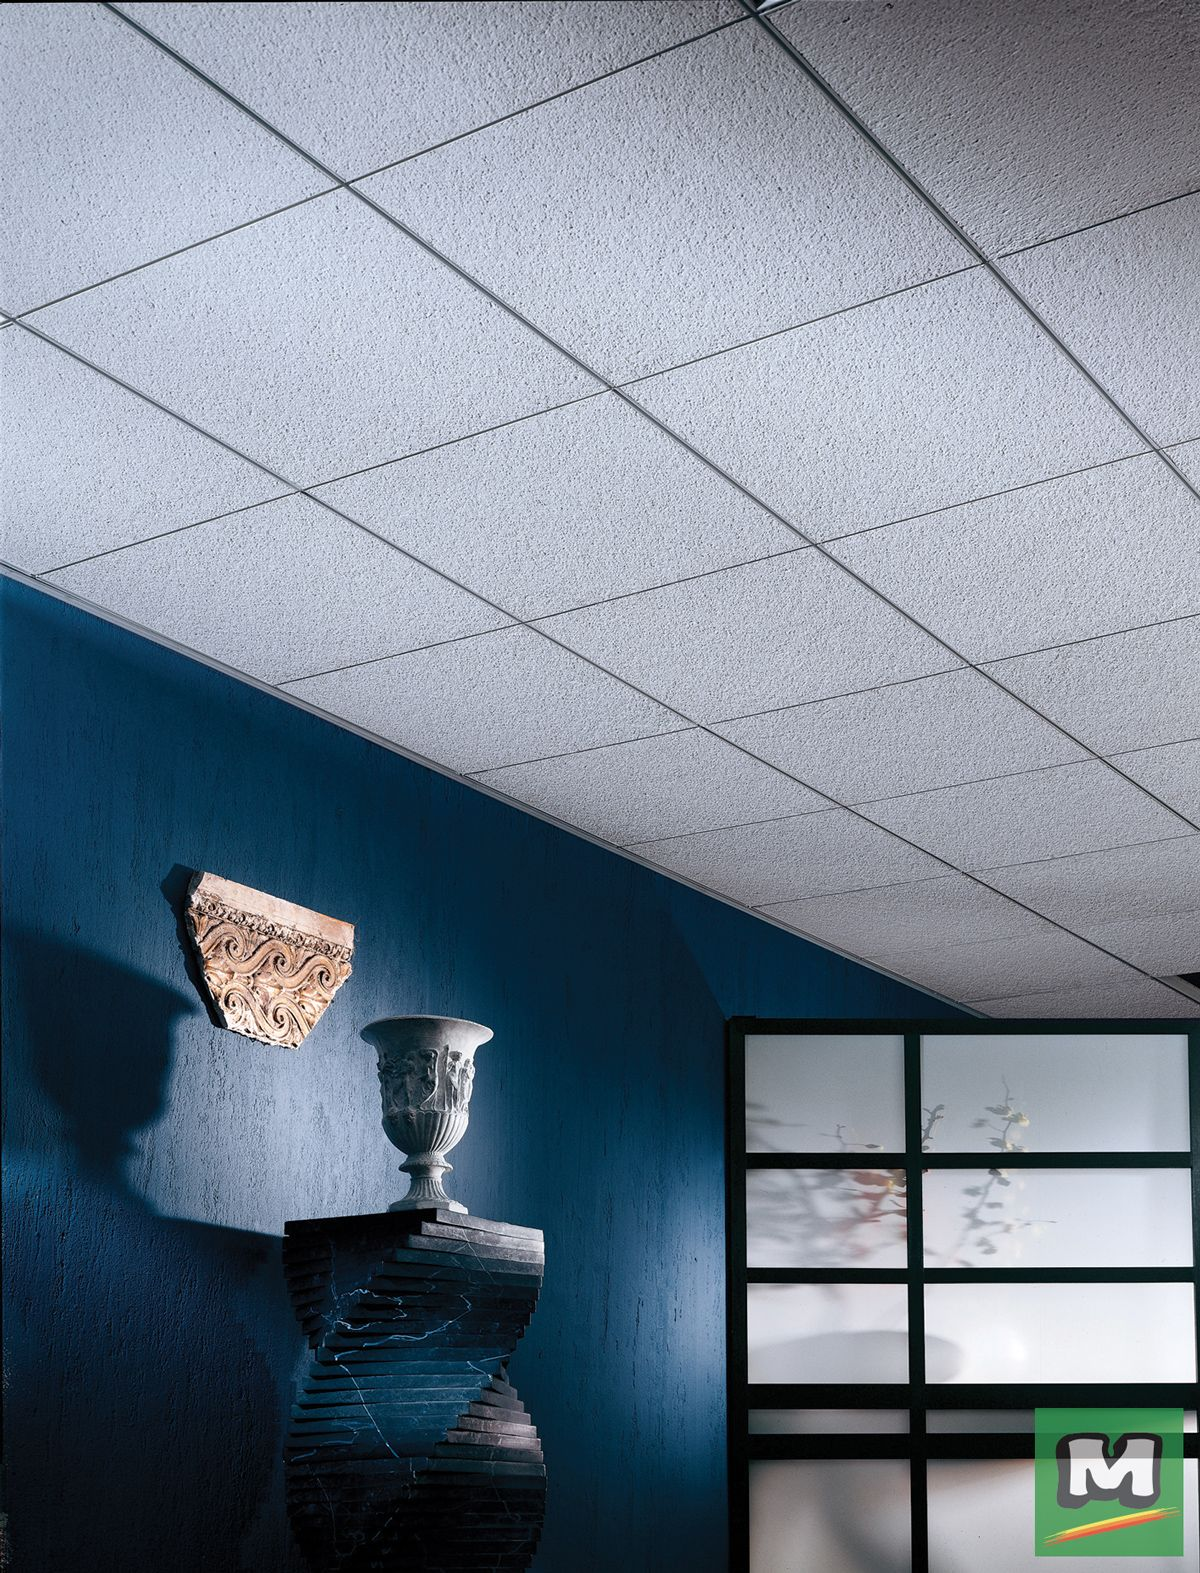 Usg Arctic R414 Acoustical Ceiling Panels Are Uniquely Textured And Easy To Install They Re Made With An Acoustical Ceiling Ceiling Panels Ceiling Tile Panel